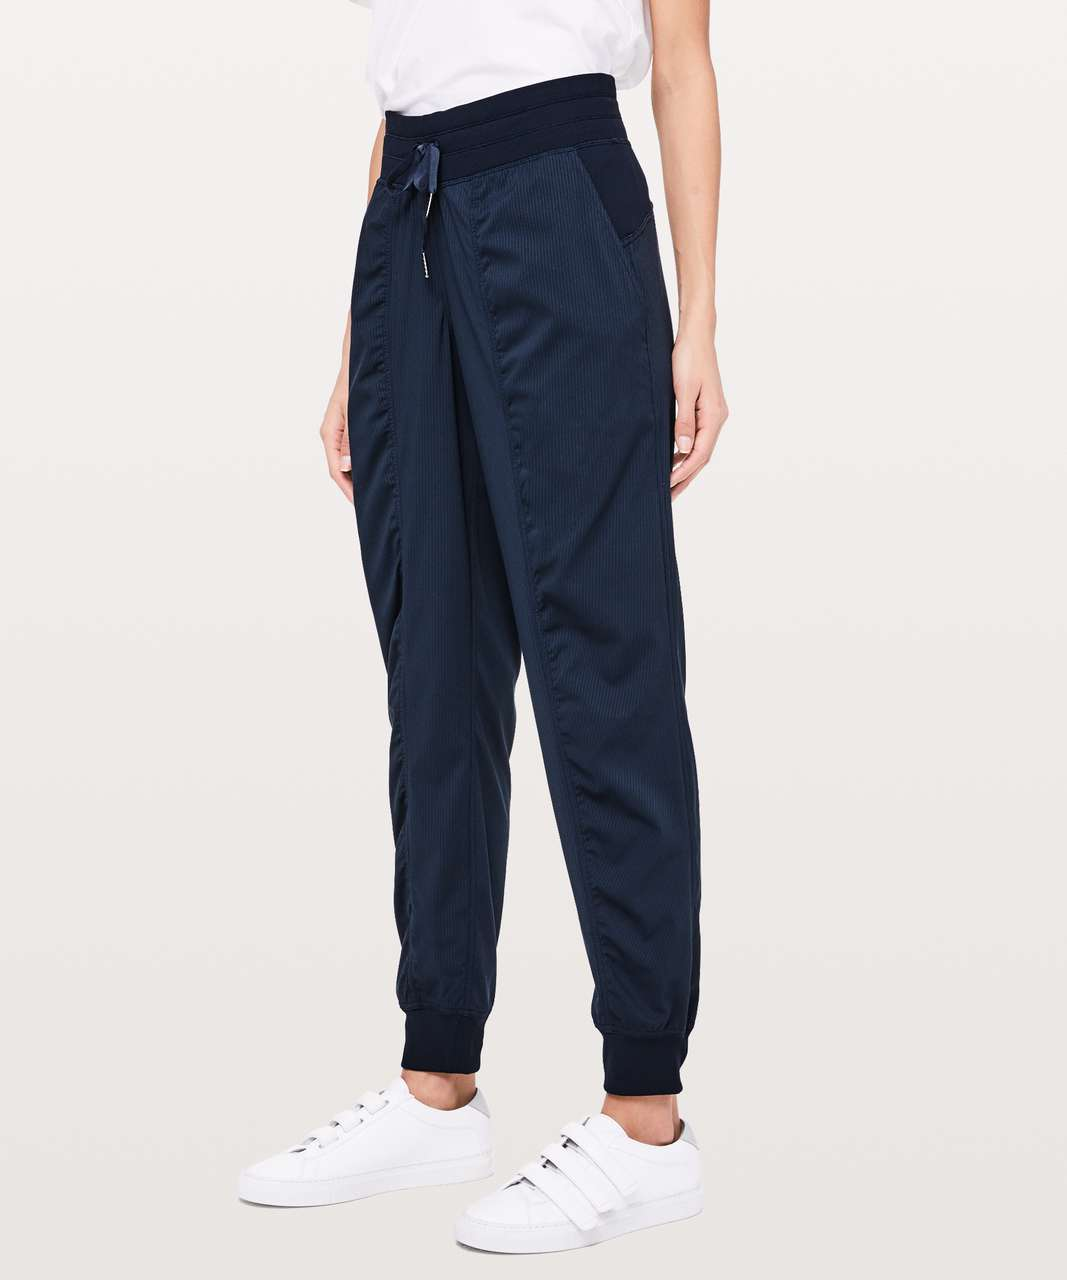 "Lululemon Dance Studio Jogger *29"" - True Navy"